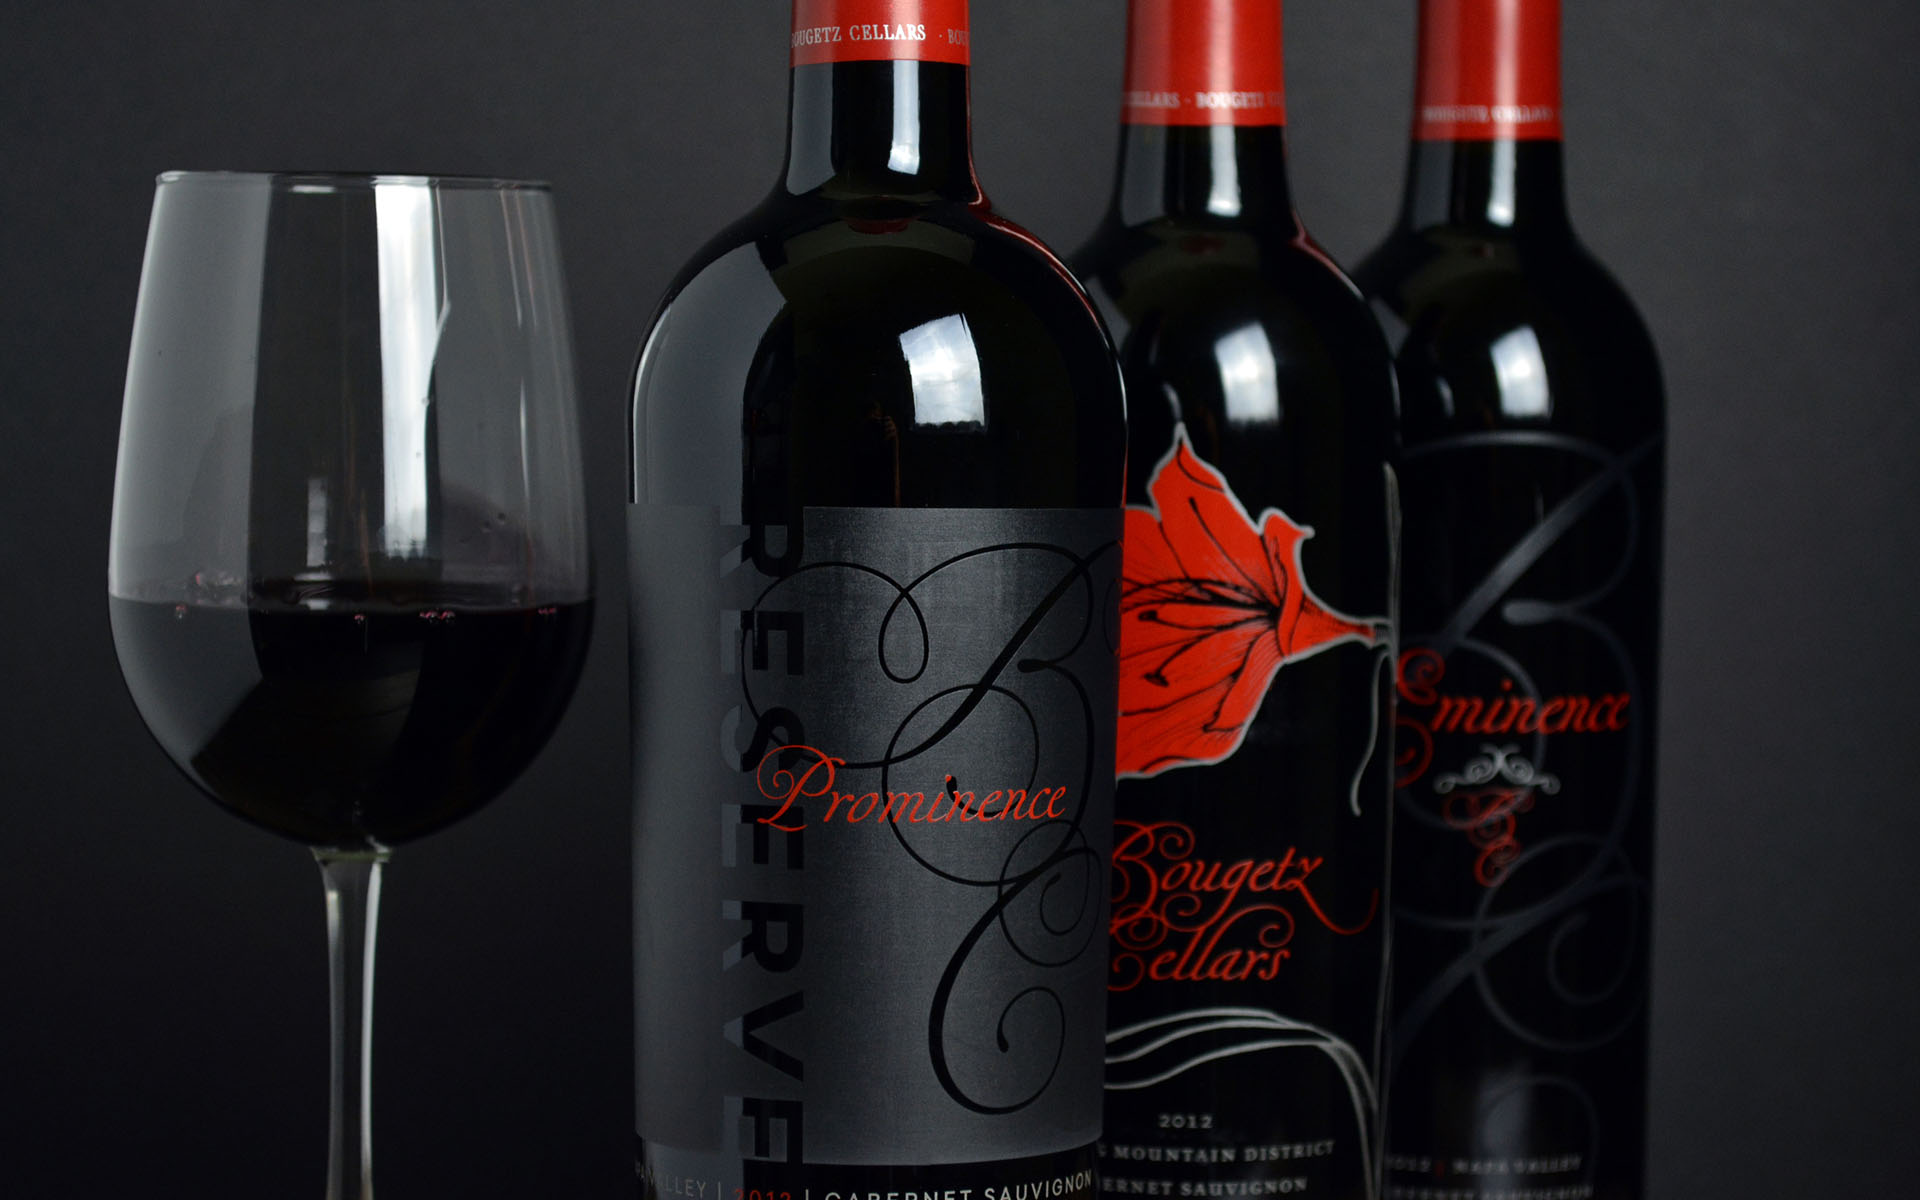 Bottle Shots for Bougetz Cellars Homepage